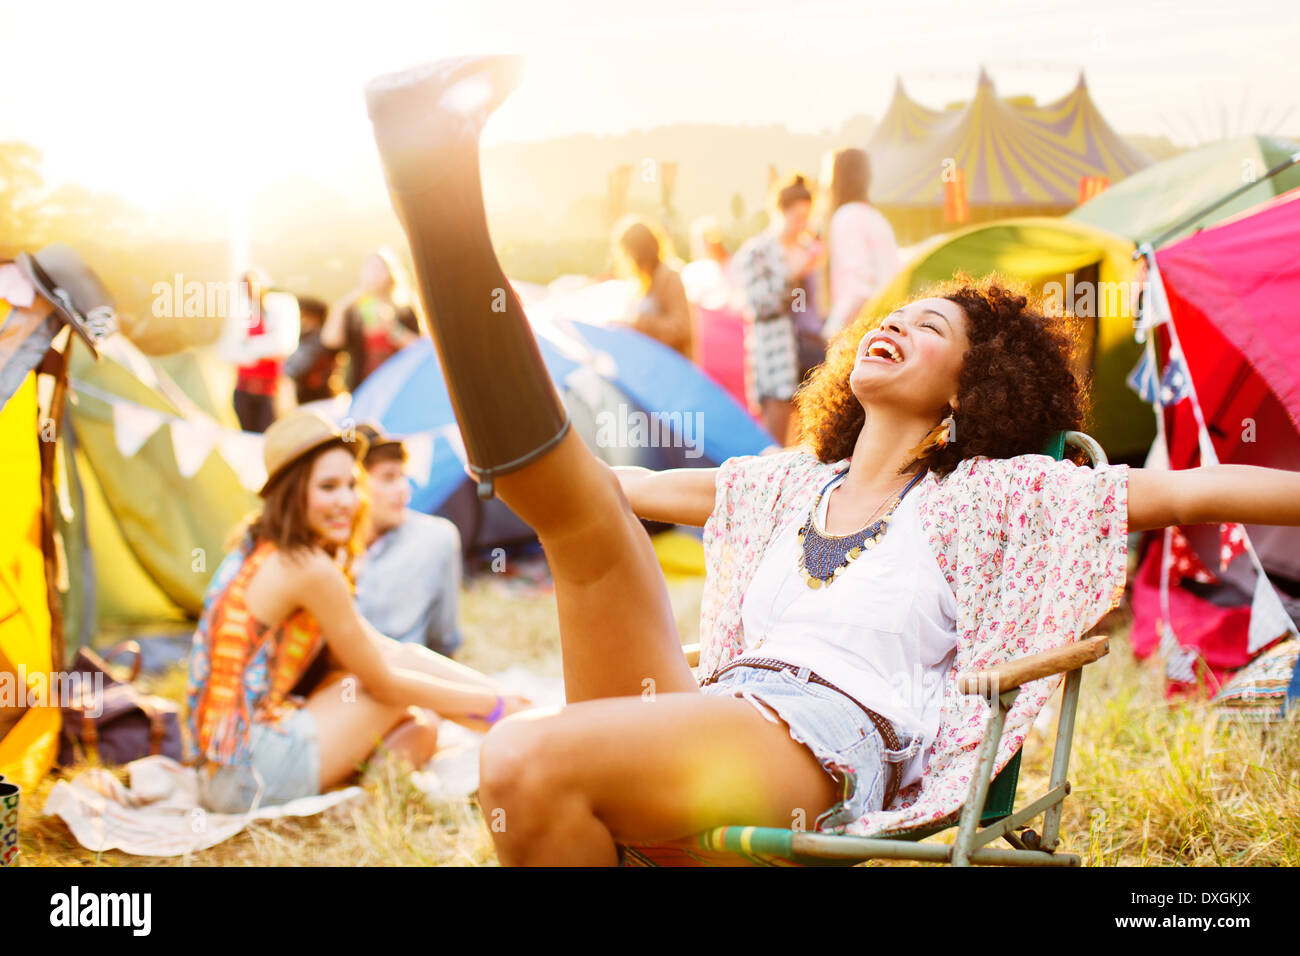 Carefree woman outside tents at music festival Stock Photo